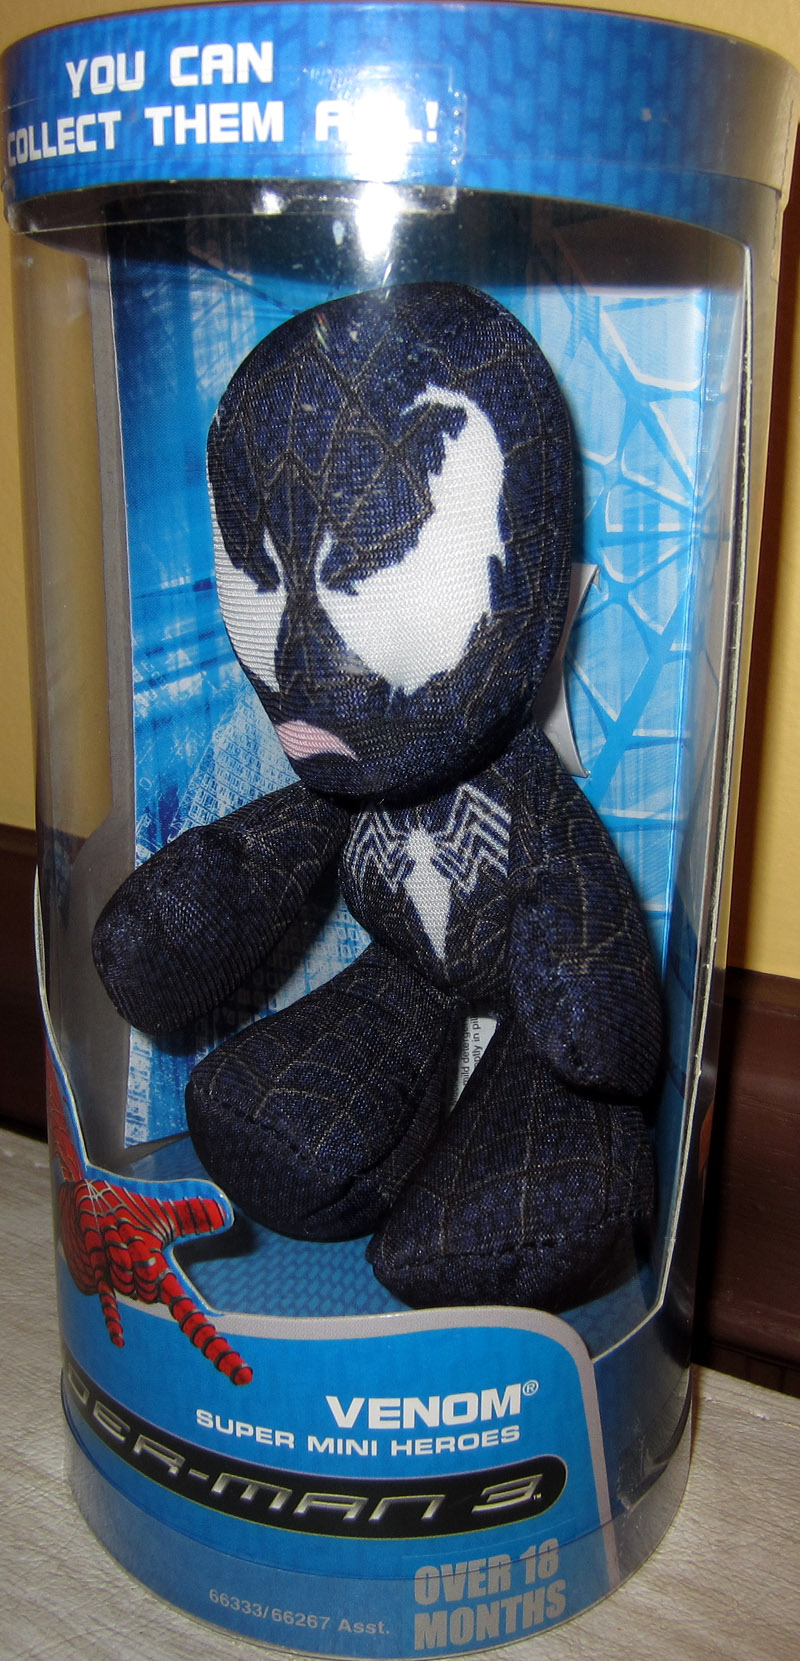 Venom Super Mini Heroes Plush (Spider-Man 3)